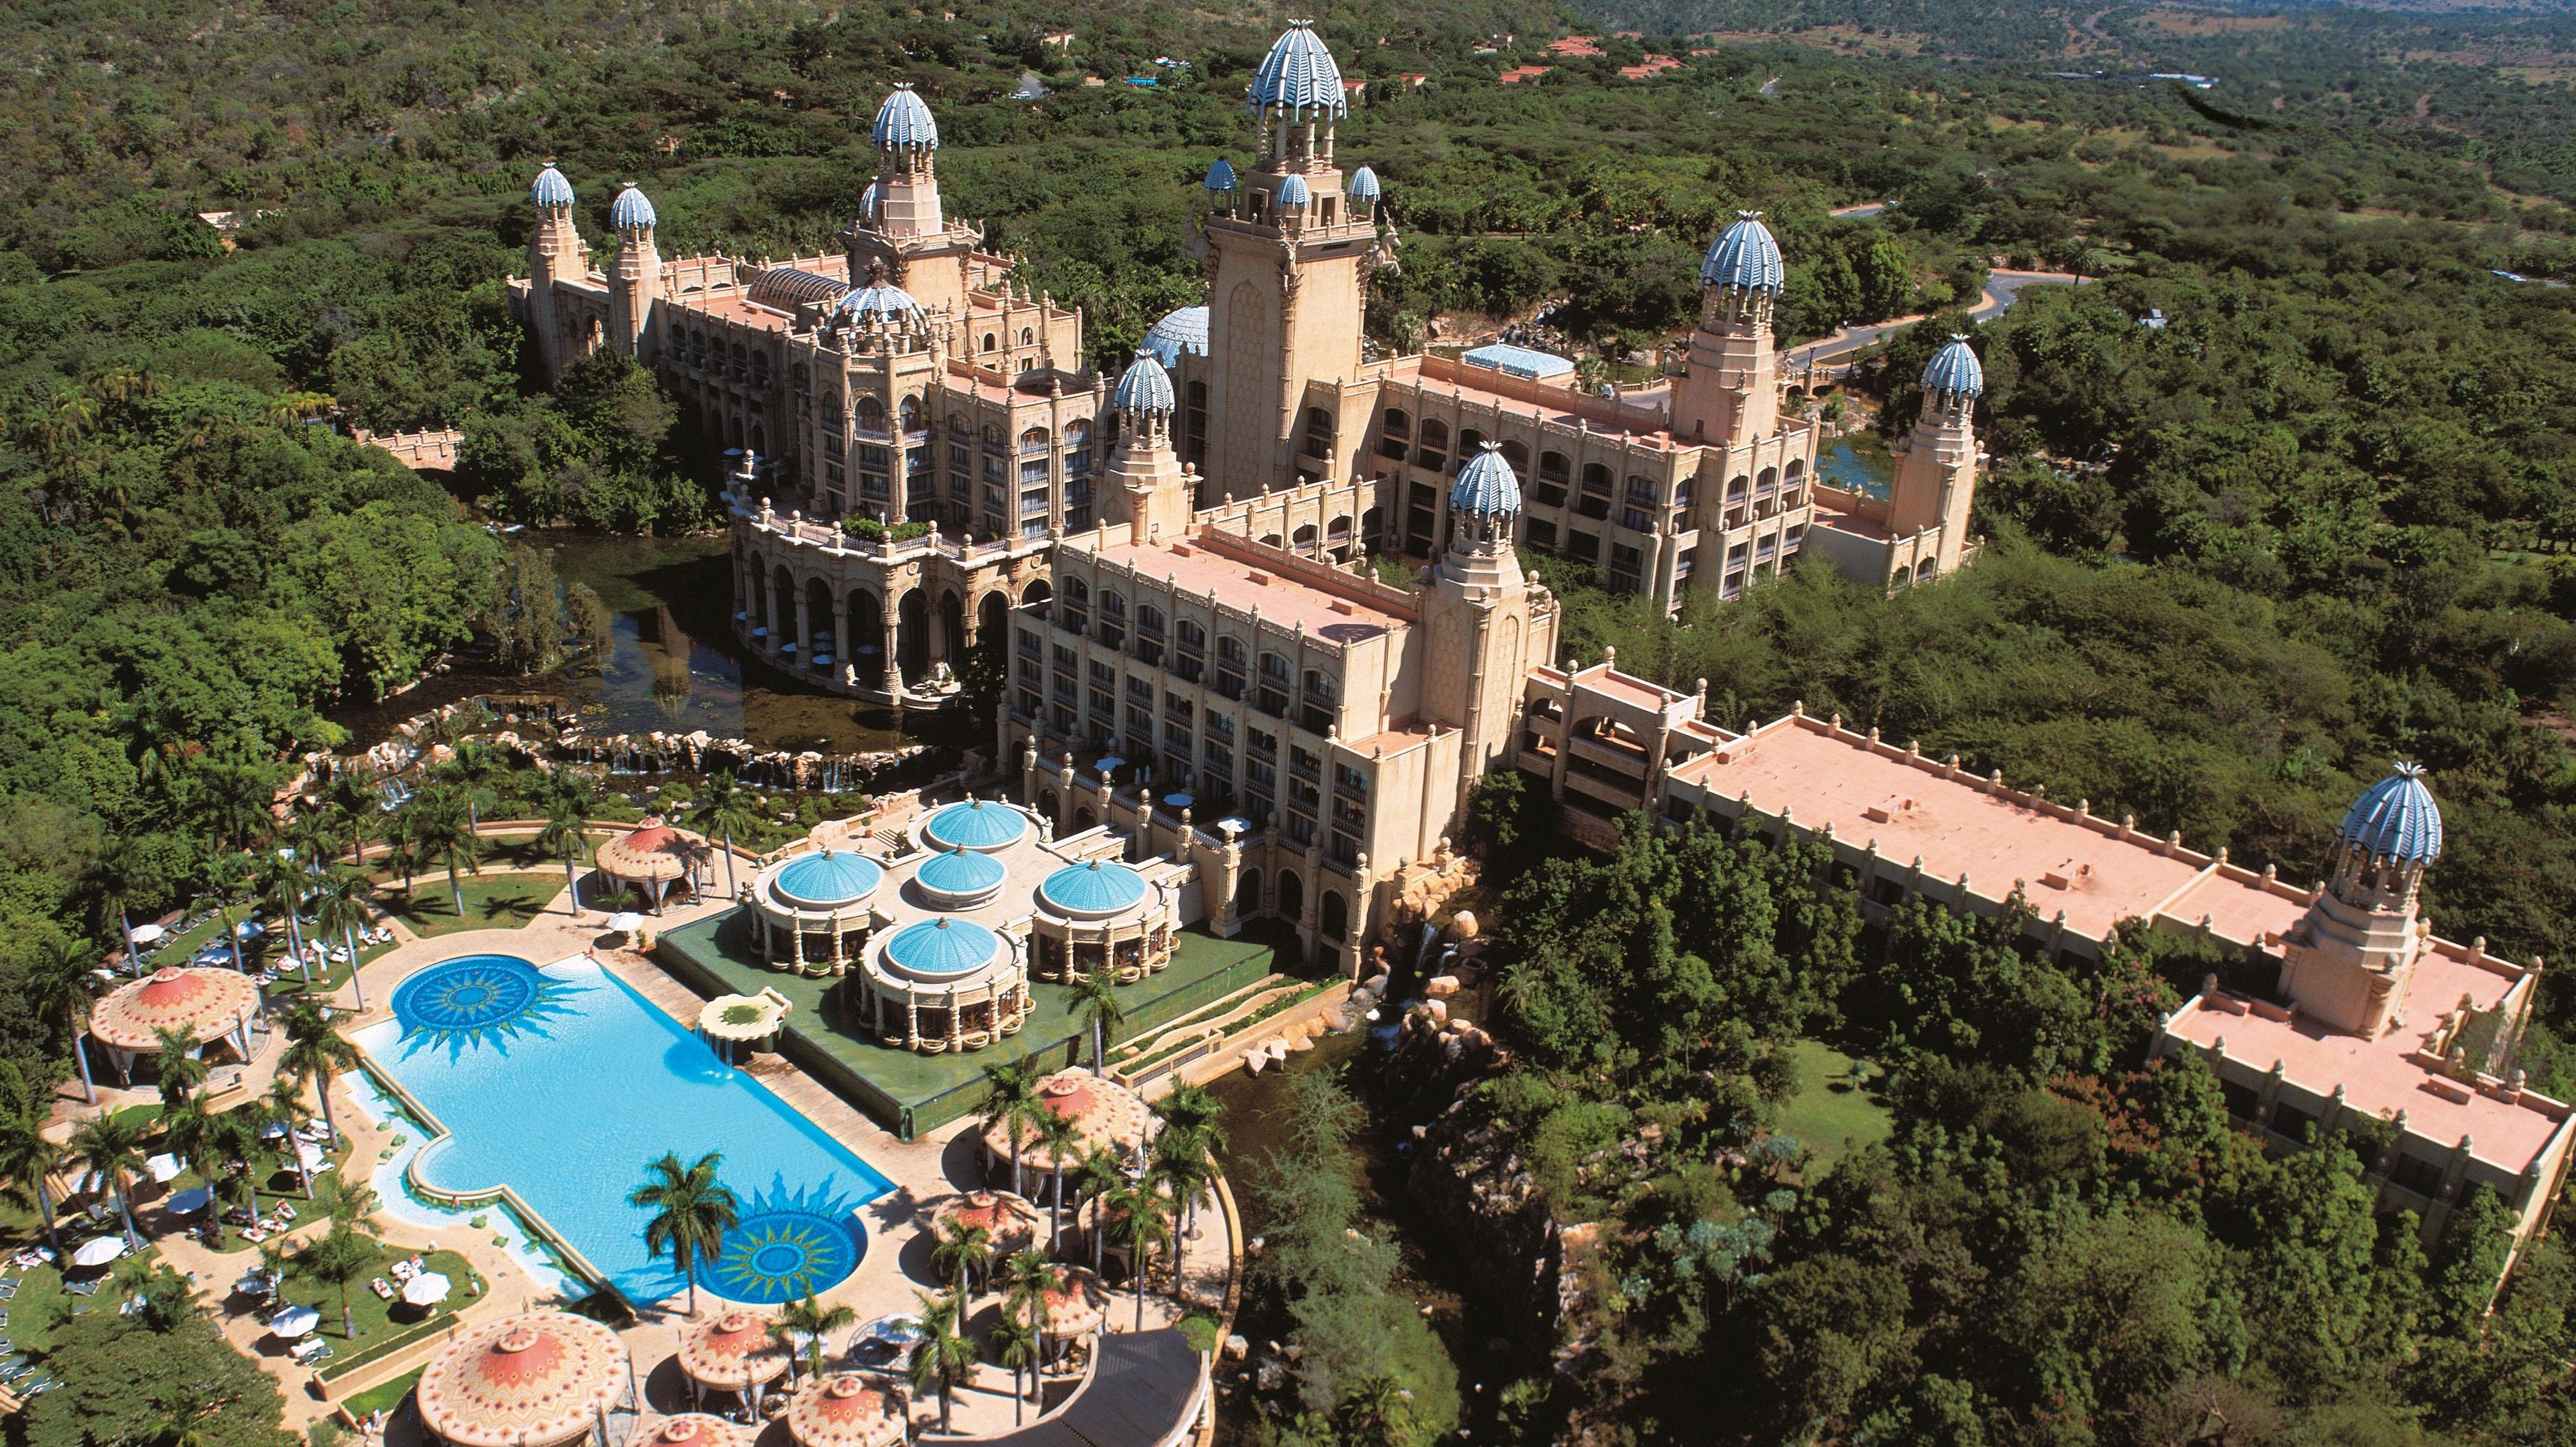 The Palace Of The Lost City >> The Palace Of The Lost City